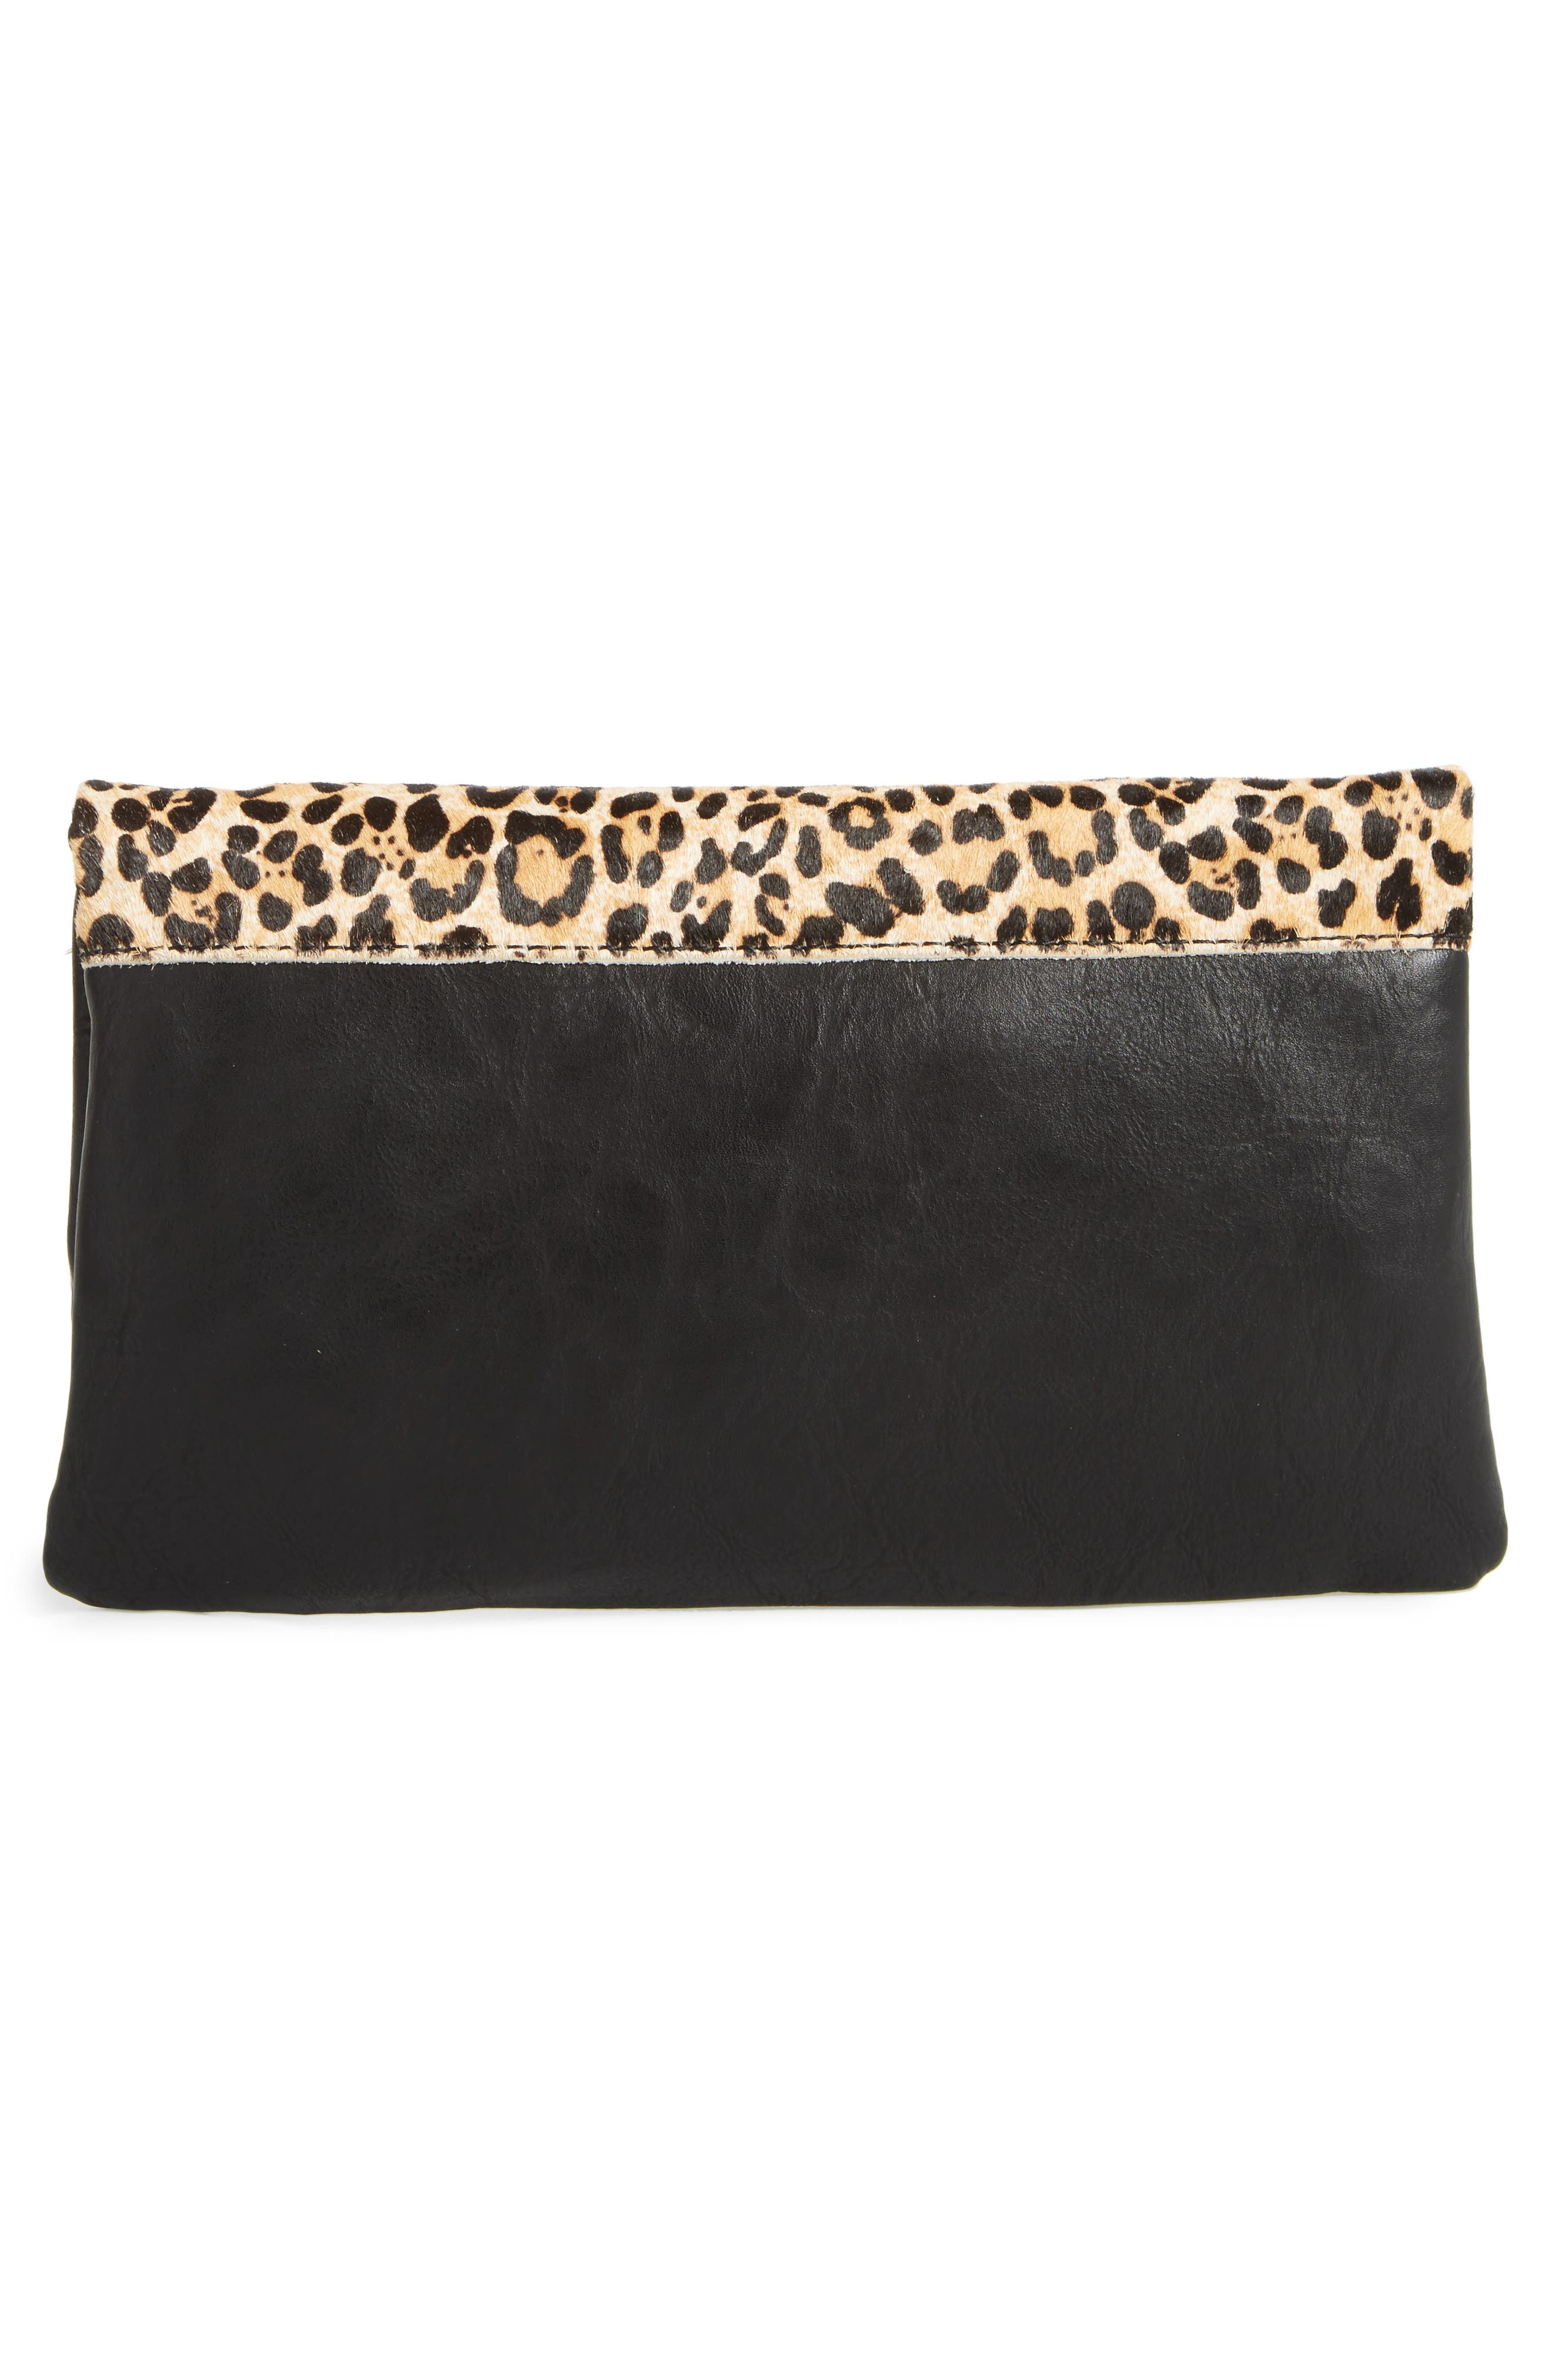 SOLE SOCIETY, Marlena Faux Leather Foldover Clutch, Alternate thumbnail 4, color, 200